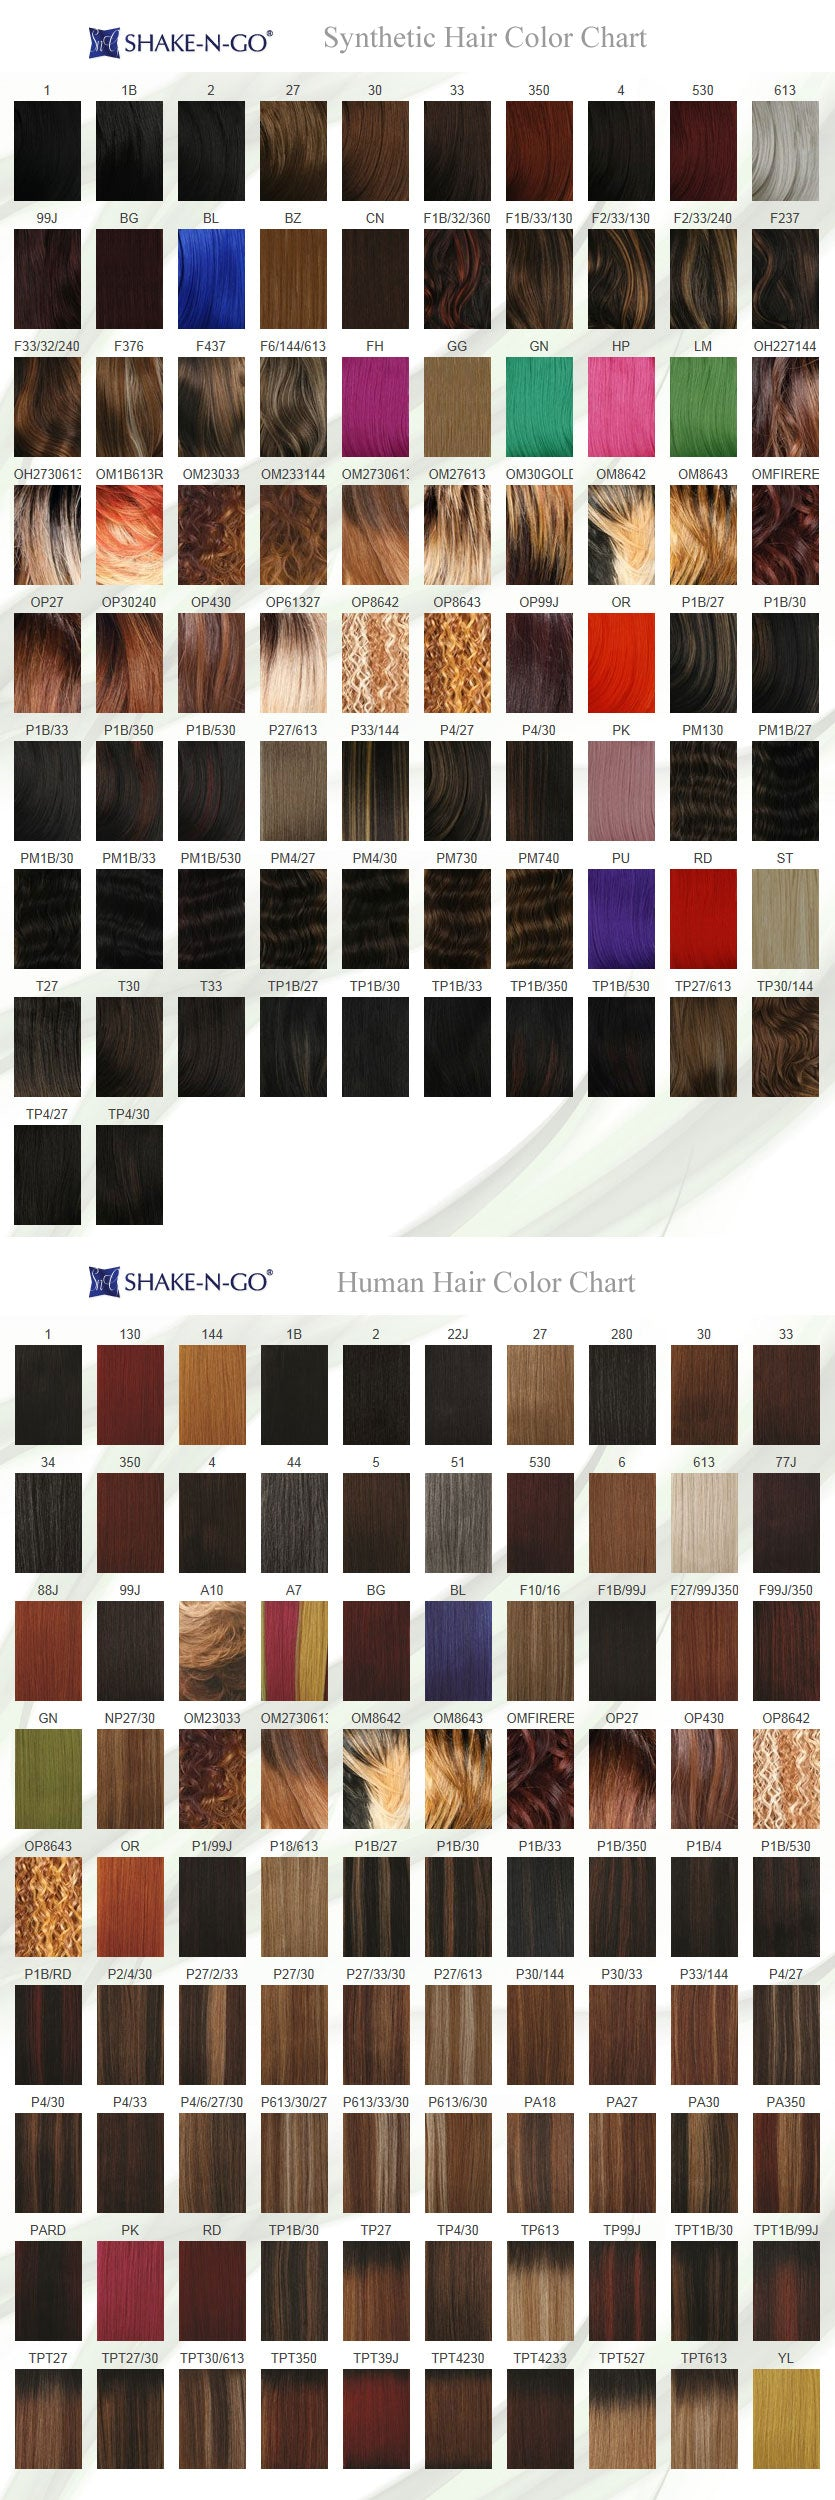 SNG Freetress Syn & Hum Hair Color Chart